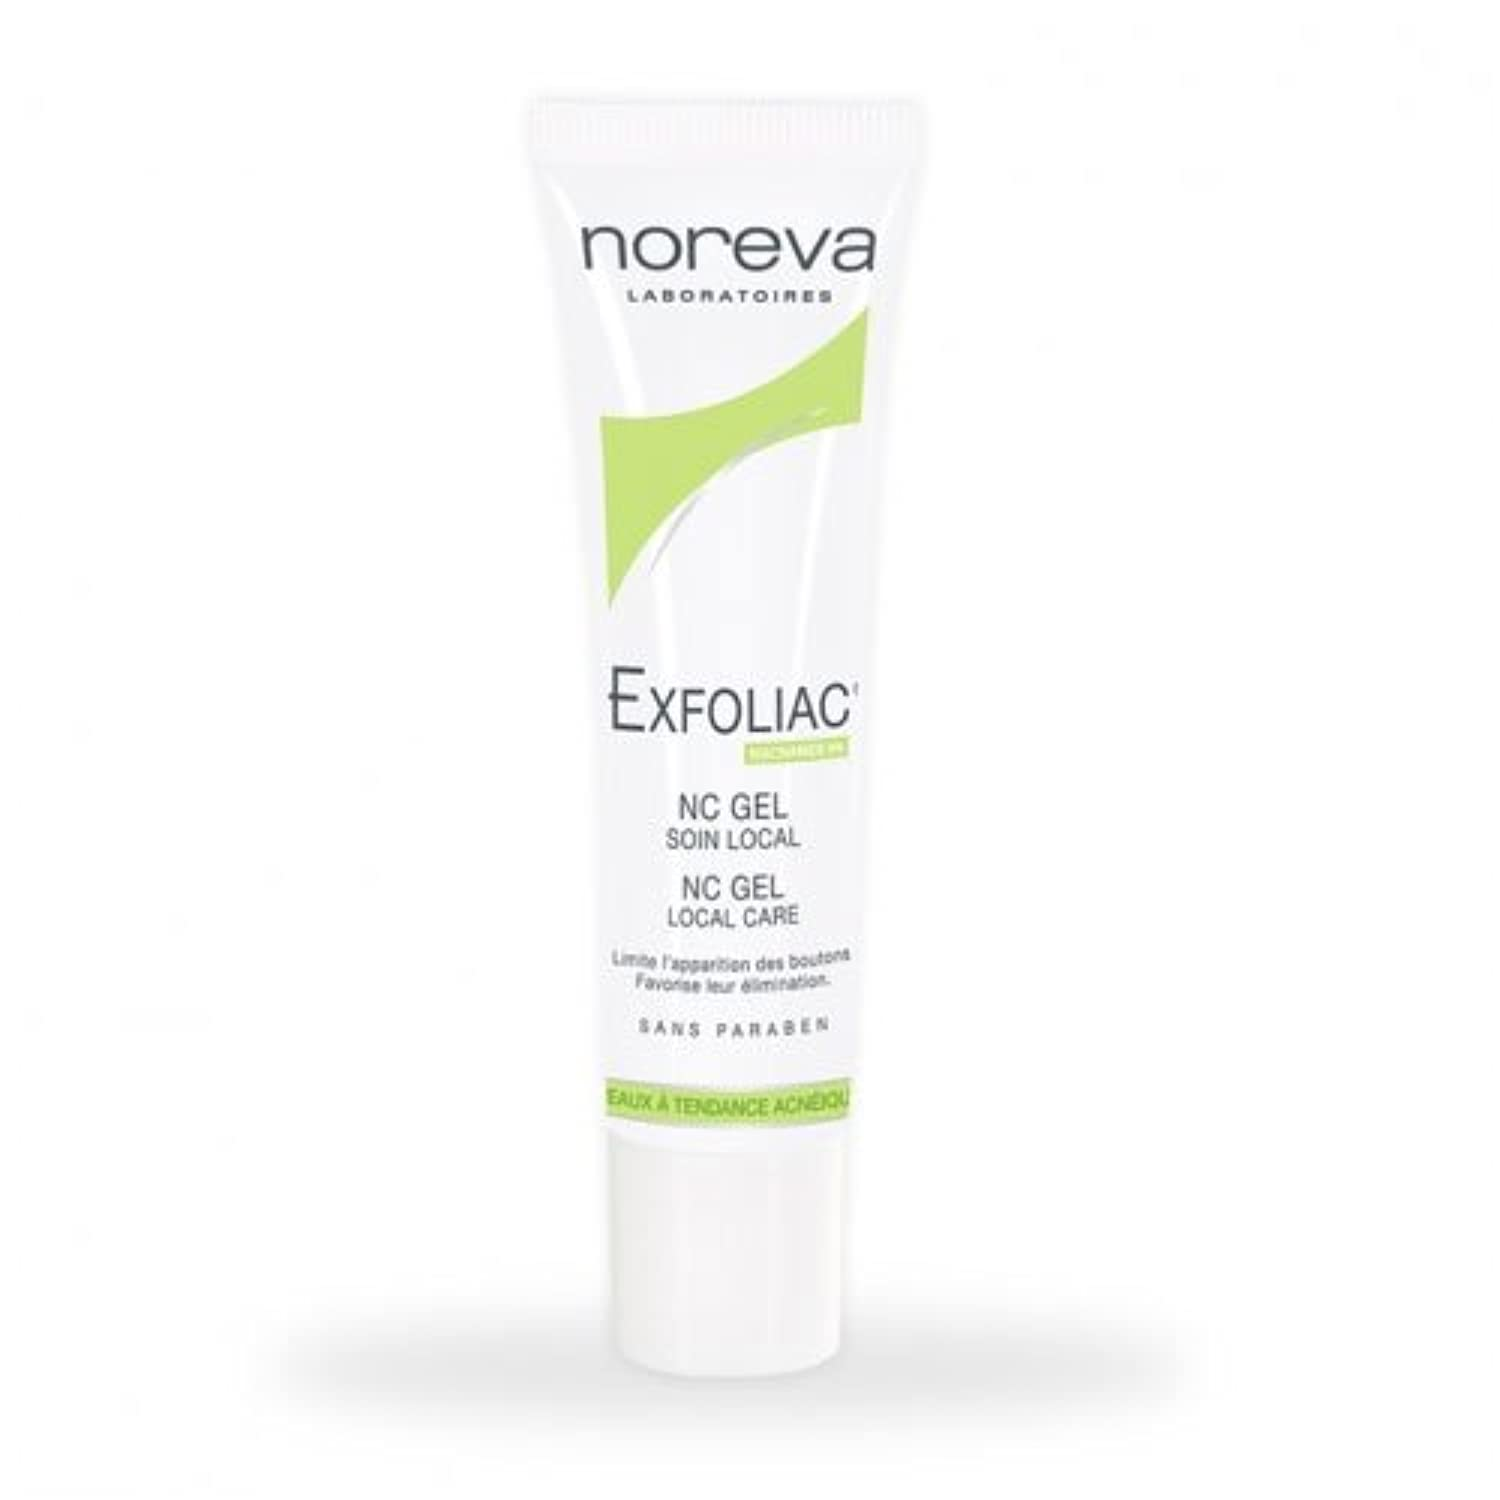 Noreva Exfoliac Nc Gel Local Care 30ml [並行輸入品]